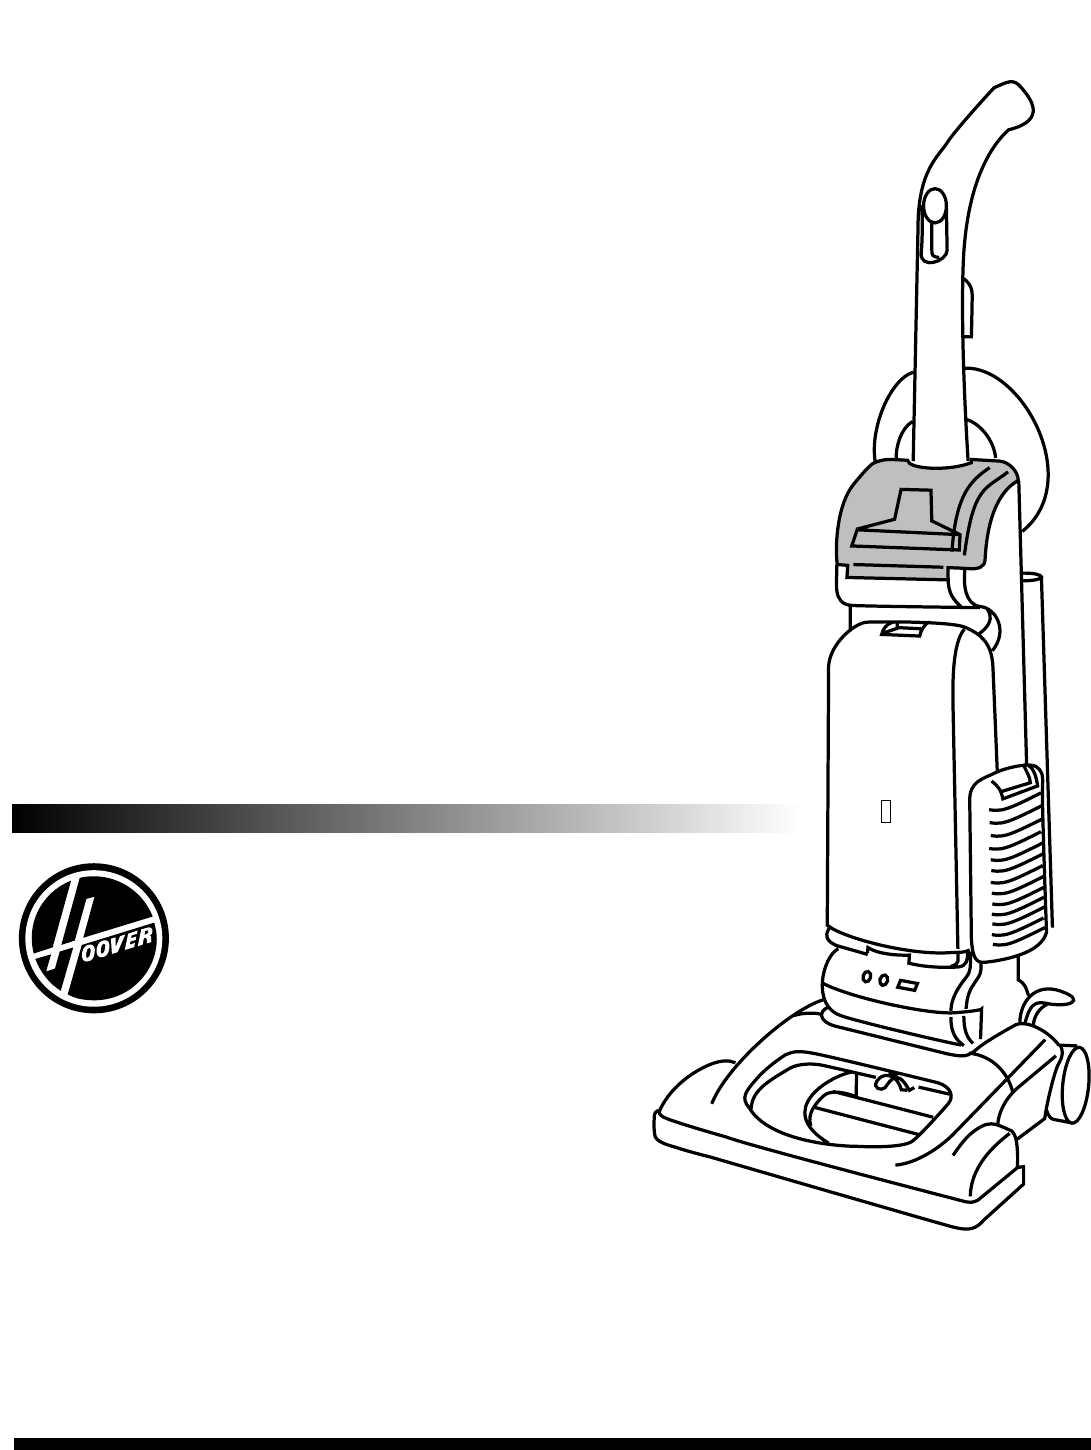 Hoover Vacuum Cleaner WindTunnel vacuum cleaner User Guide